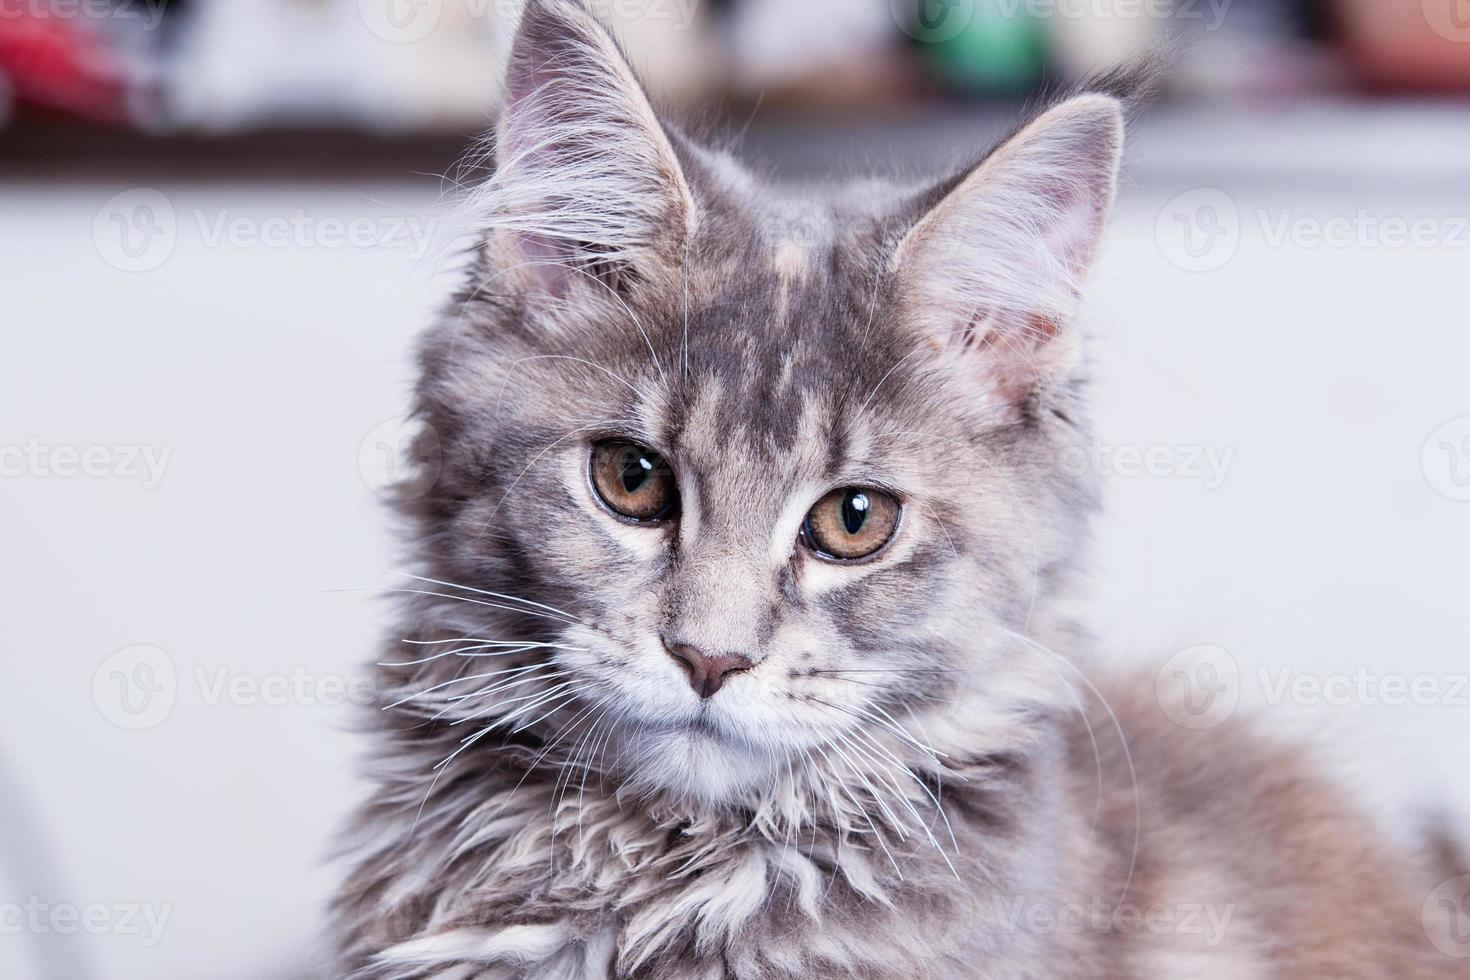 Young Maine Coon cat photo